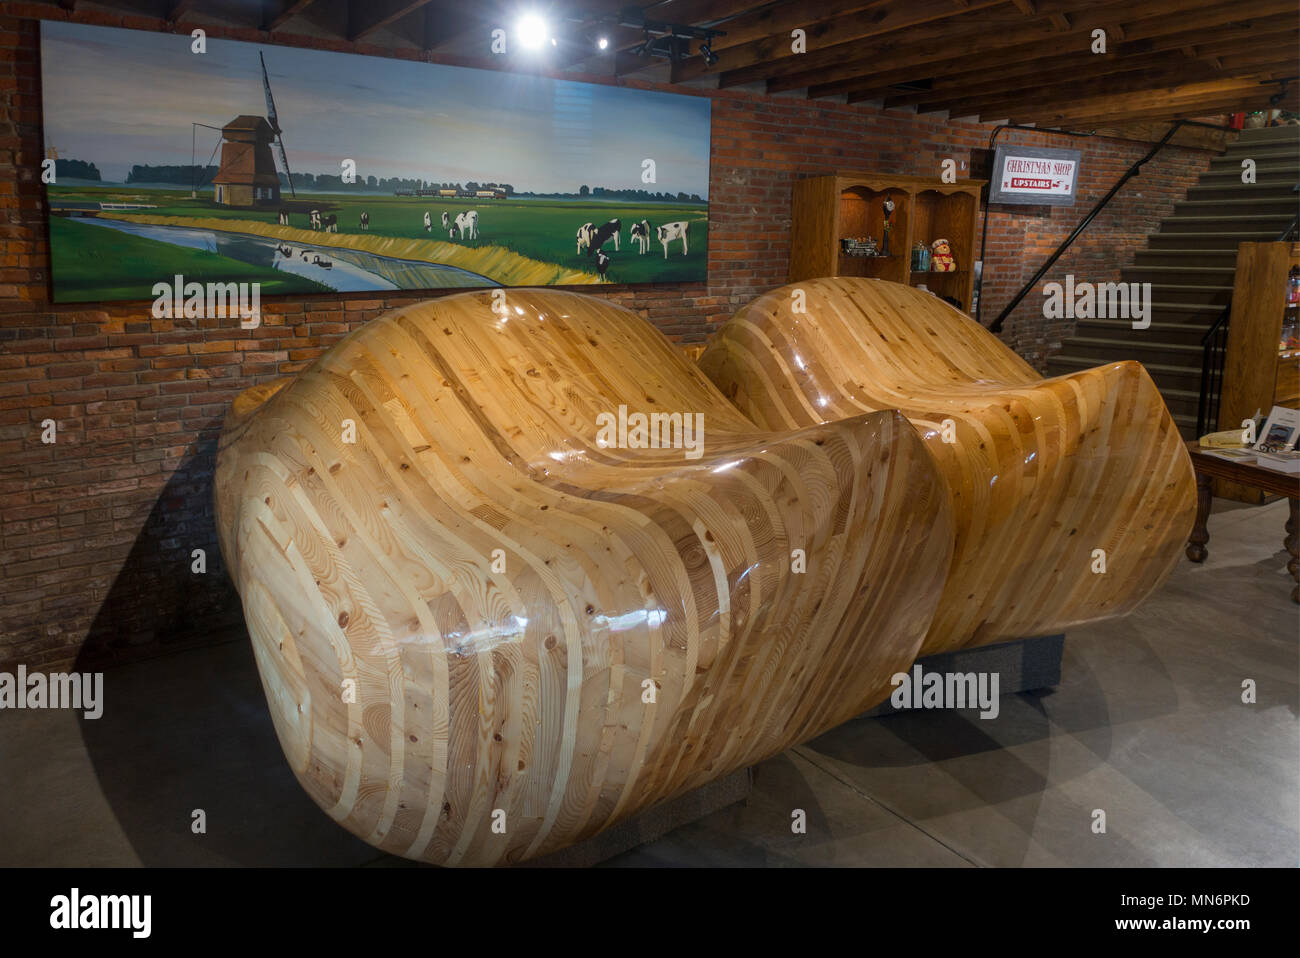 worlds records collection in Casey Illinois - Stock Image